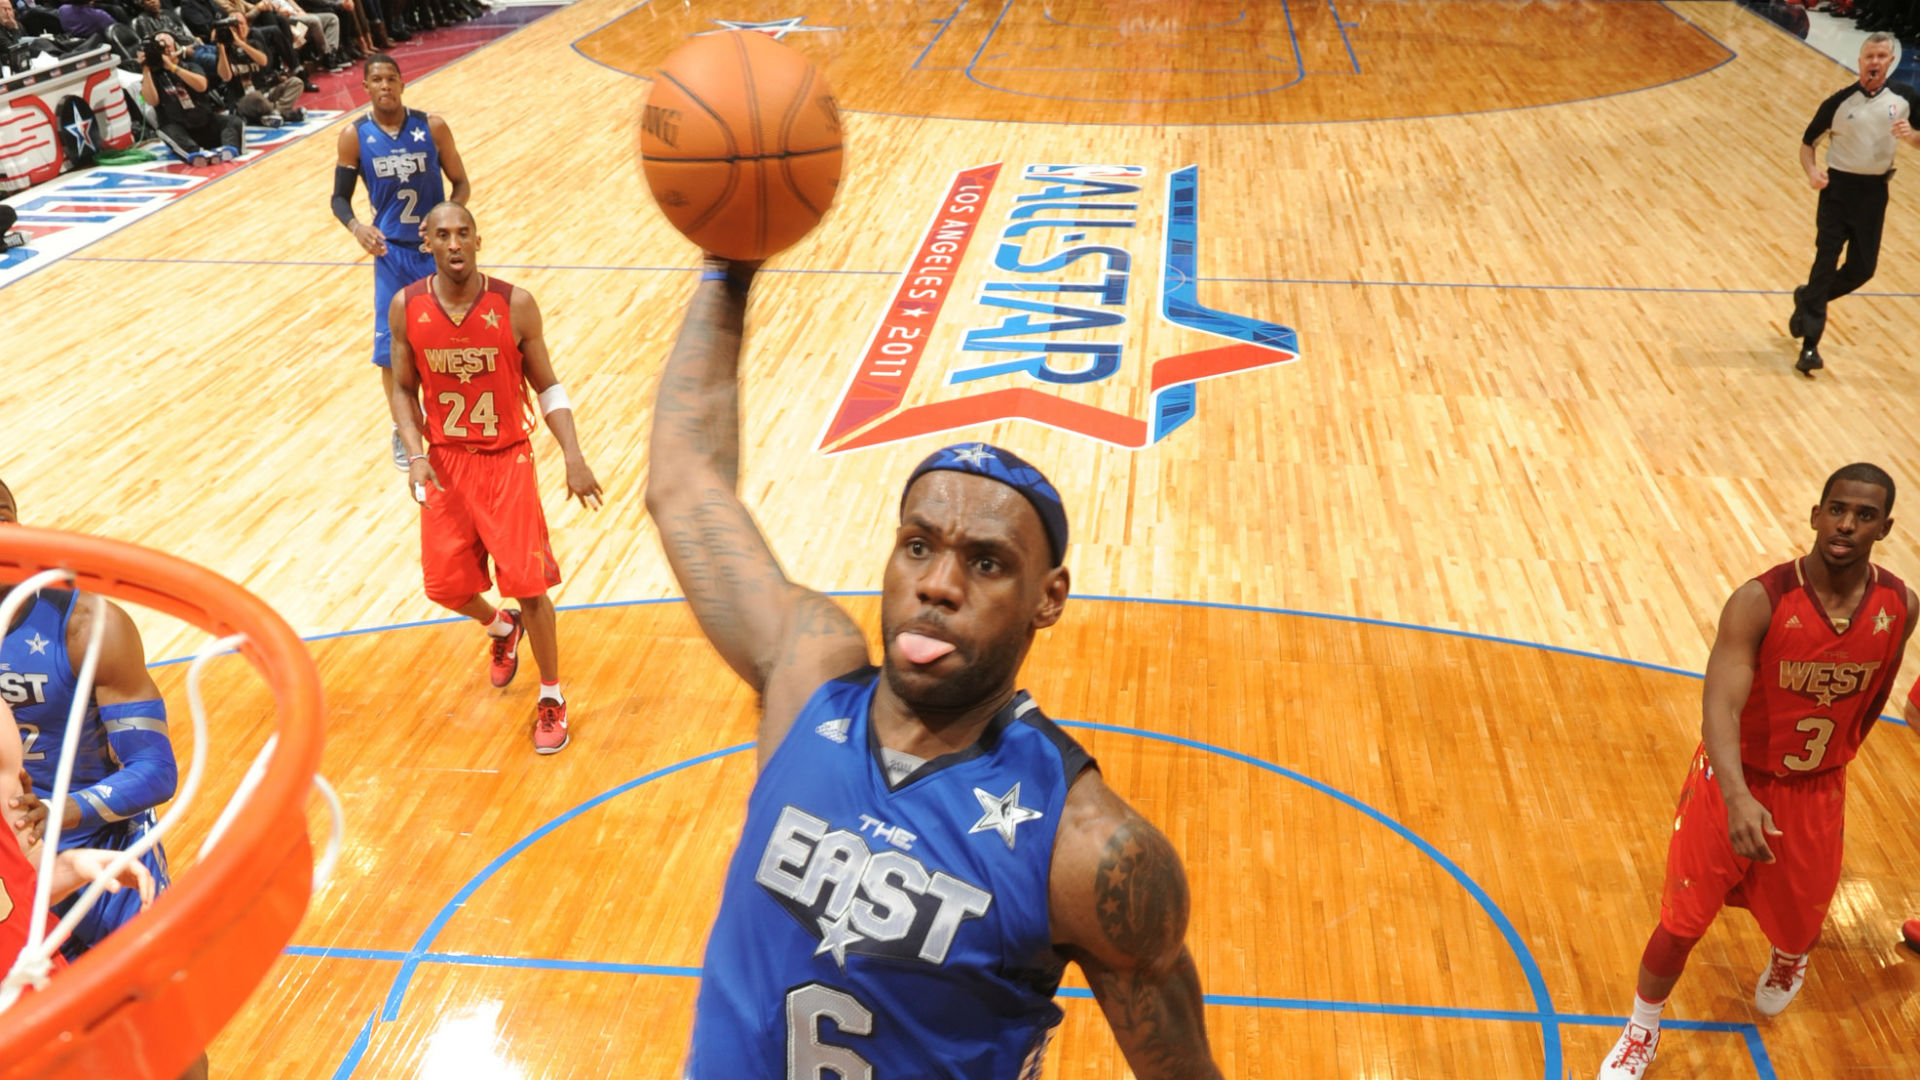 lebron-2011-all-star-dunk-021119-ftr.jpg